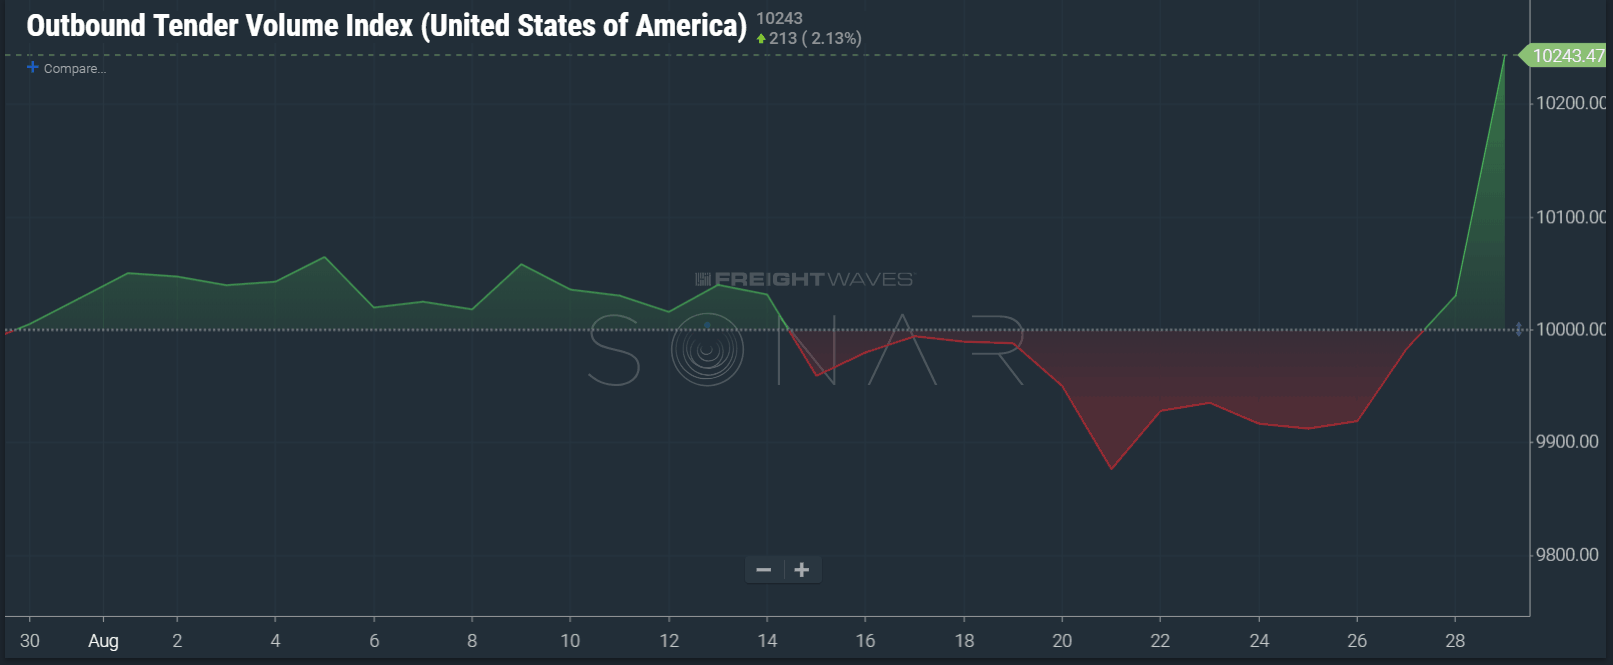 SONAR outbound tender volume index showing a large increase in the nation